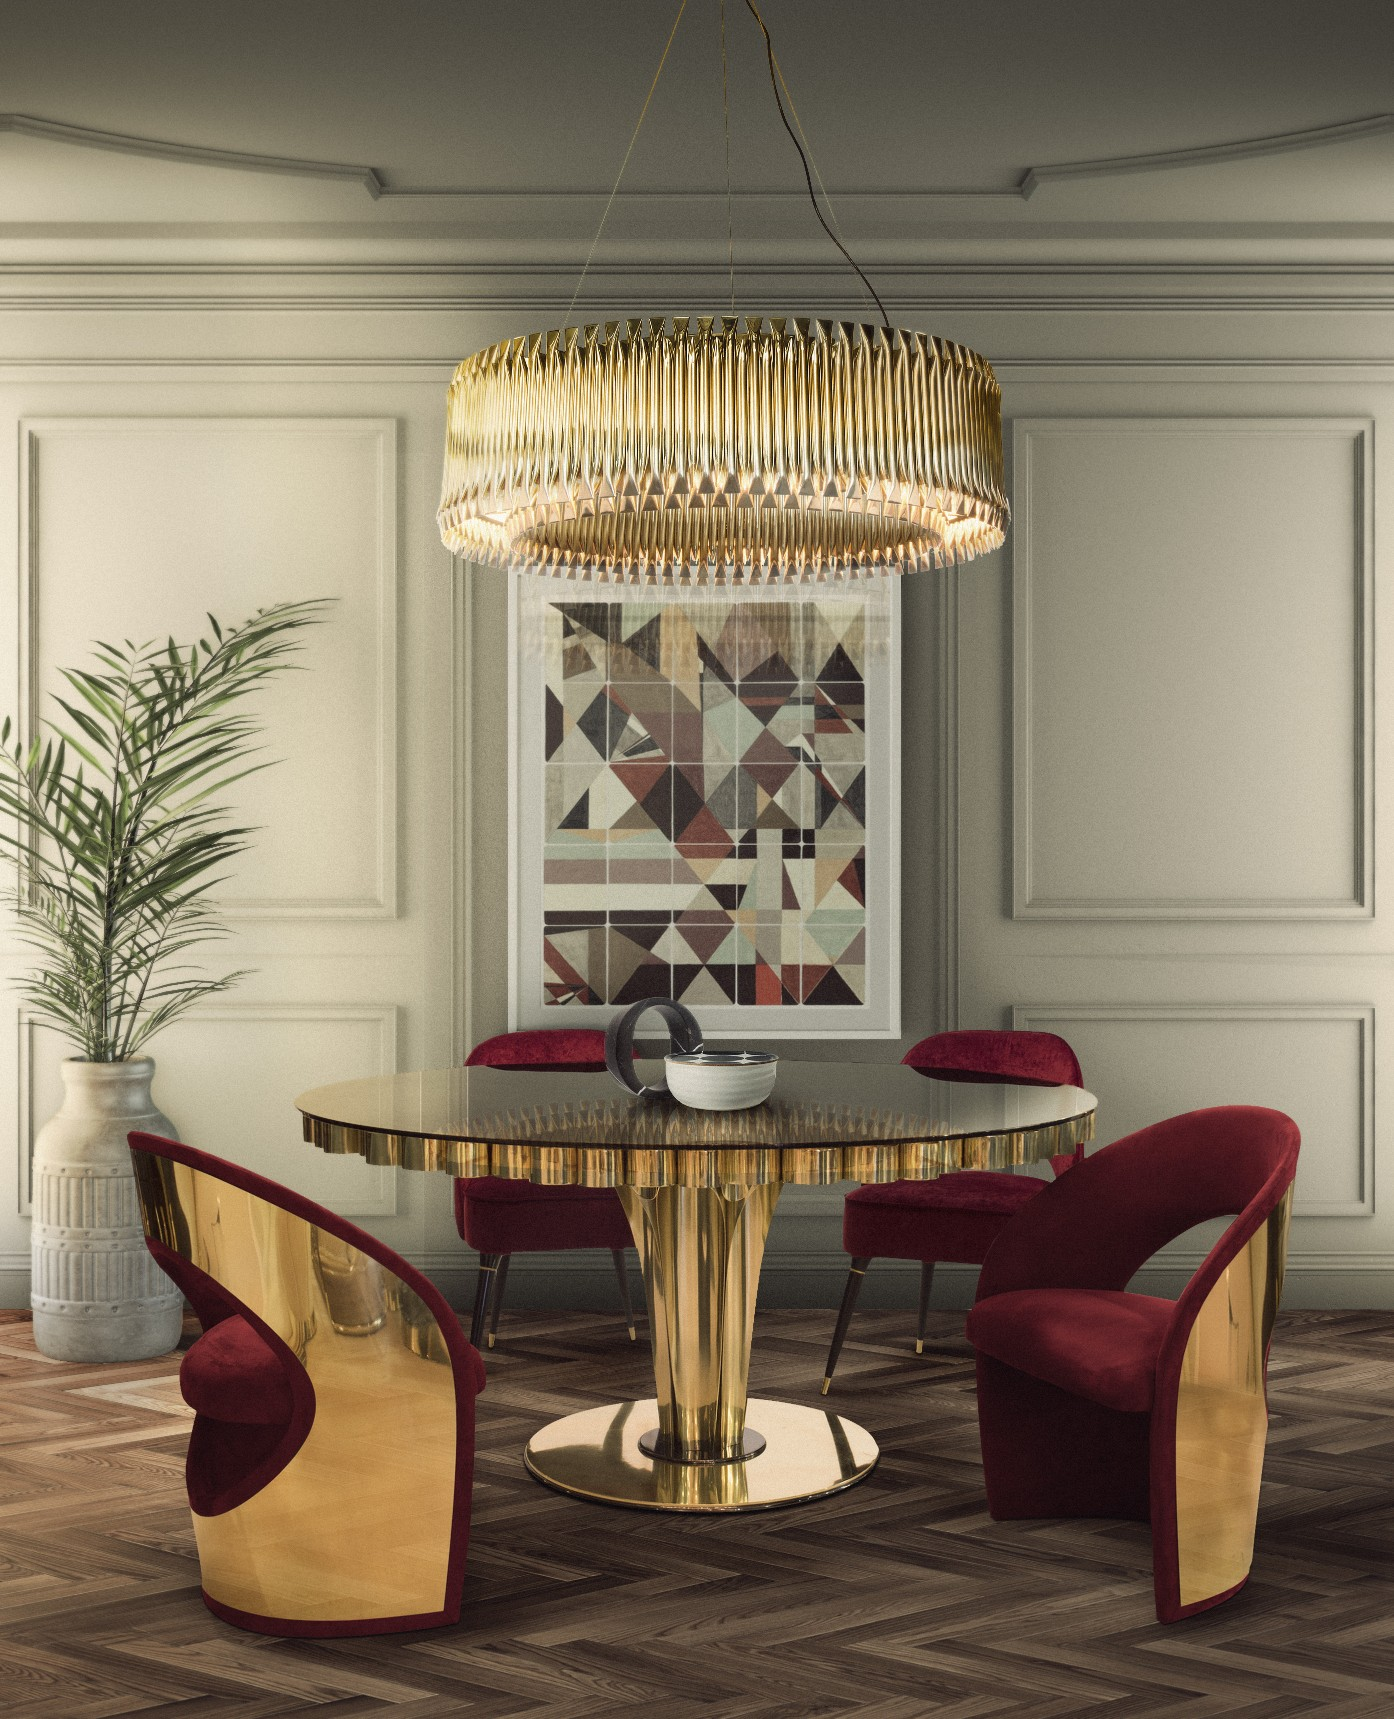 Missoni Home Dining Chair Miss: Modern Dining Room Chairs You Don't Want To Miss Out On